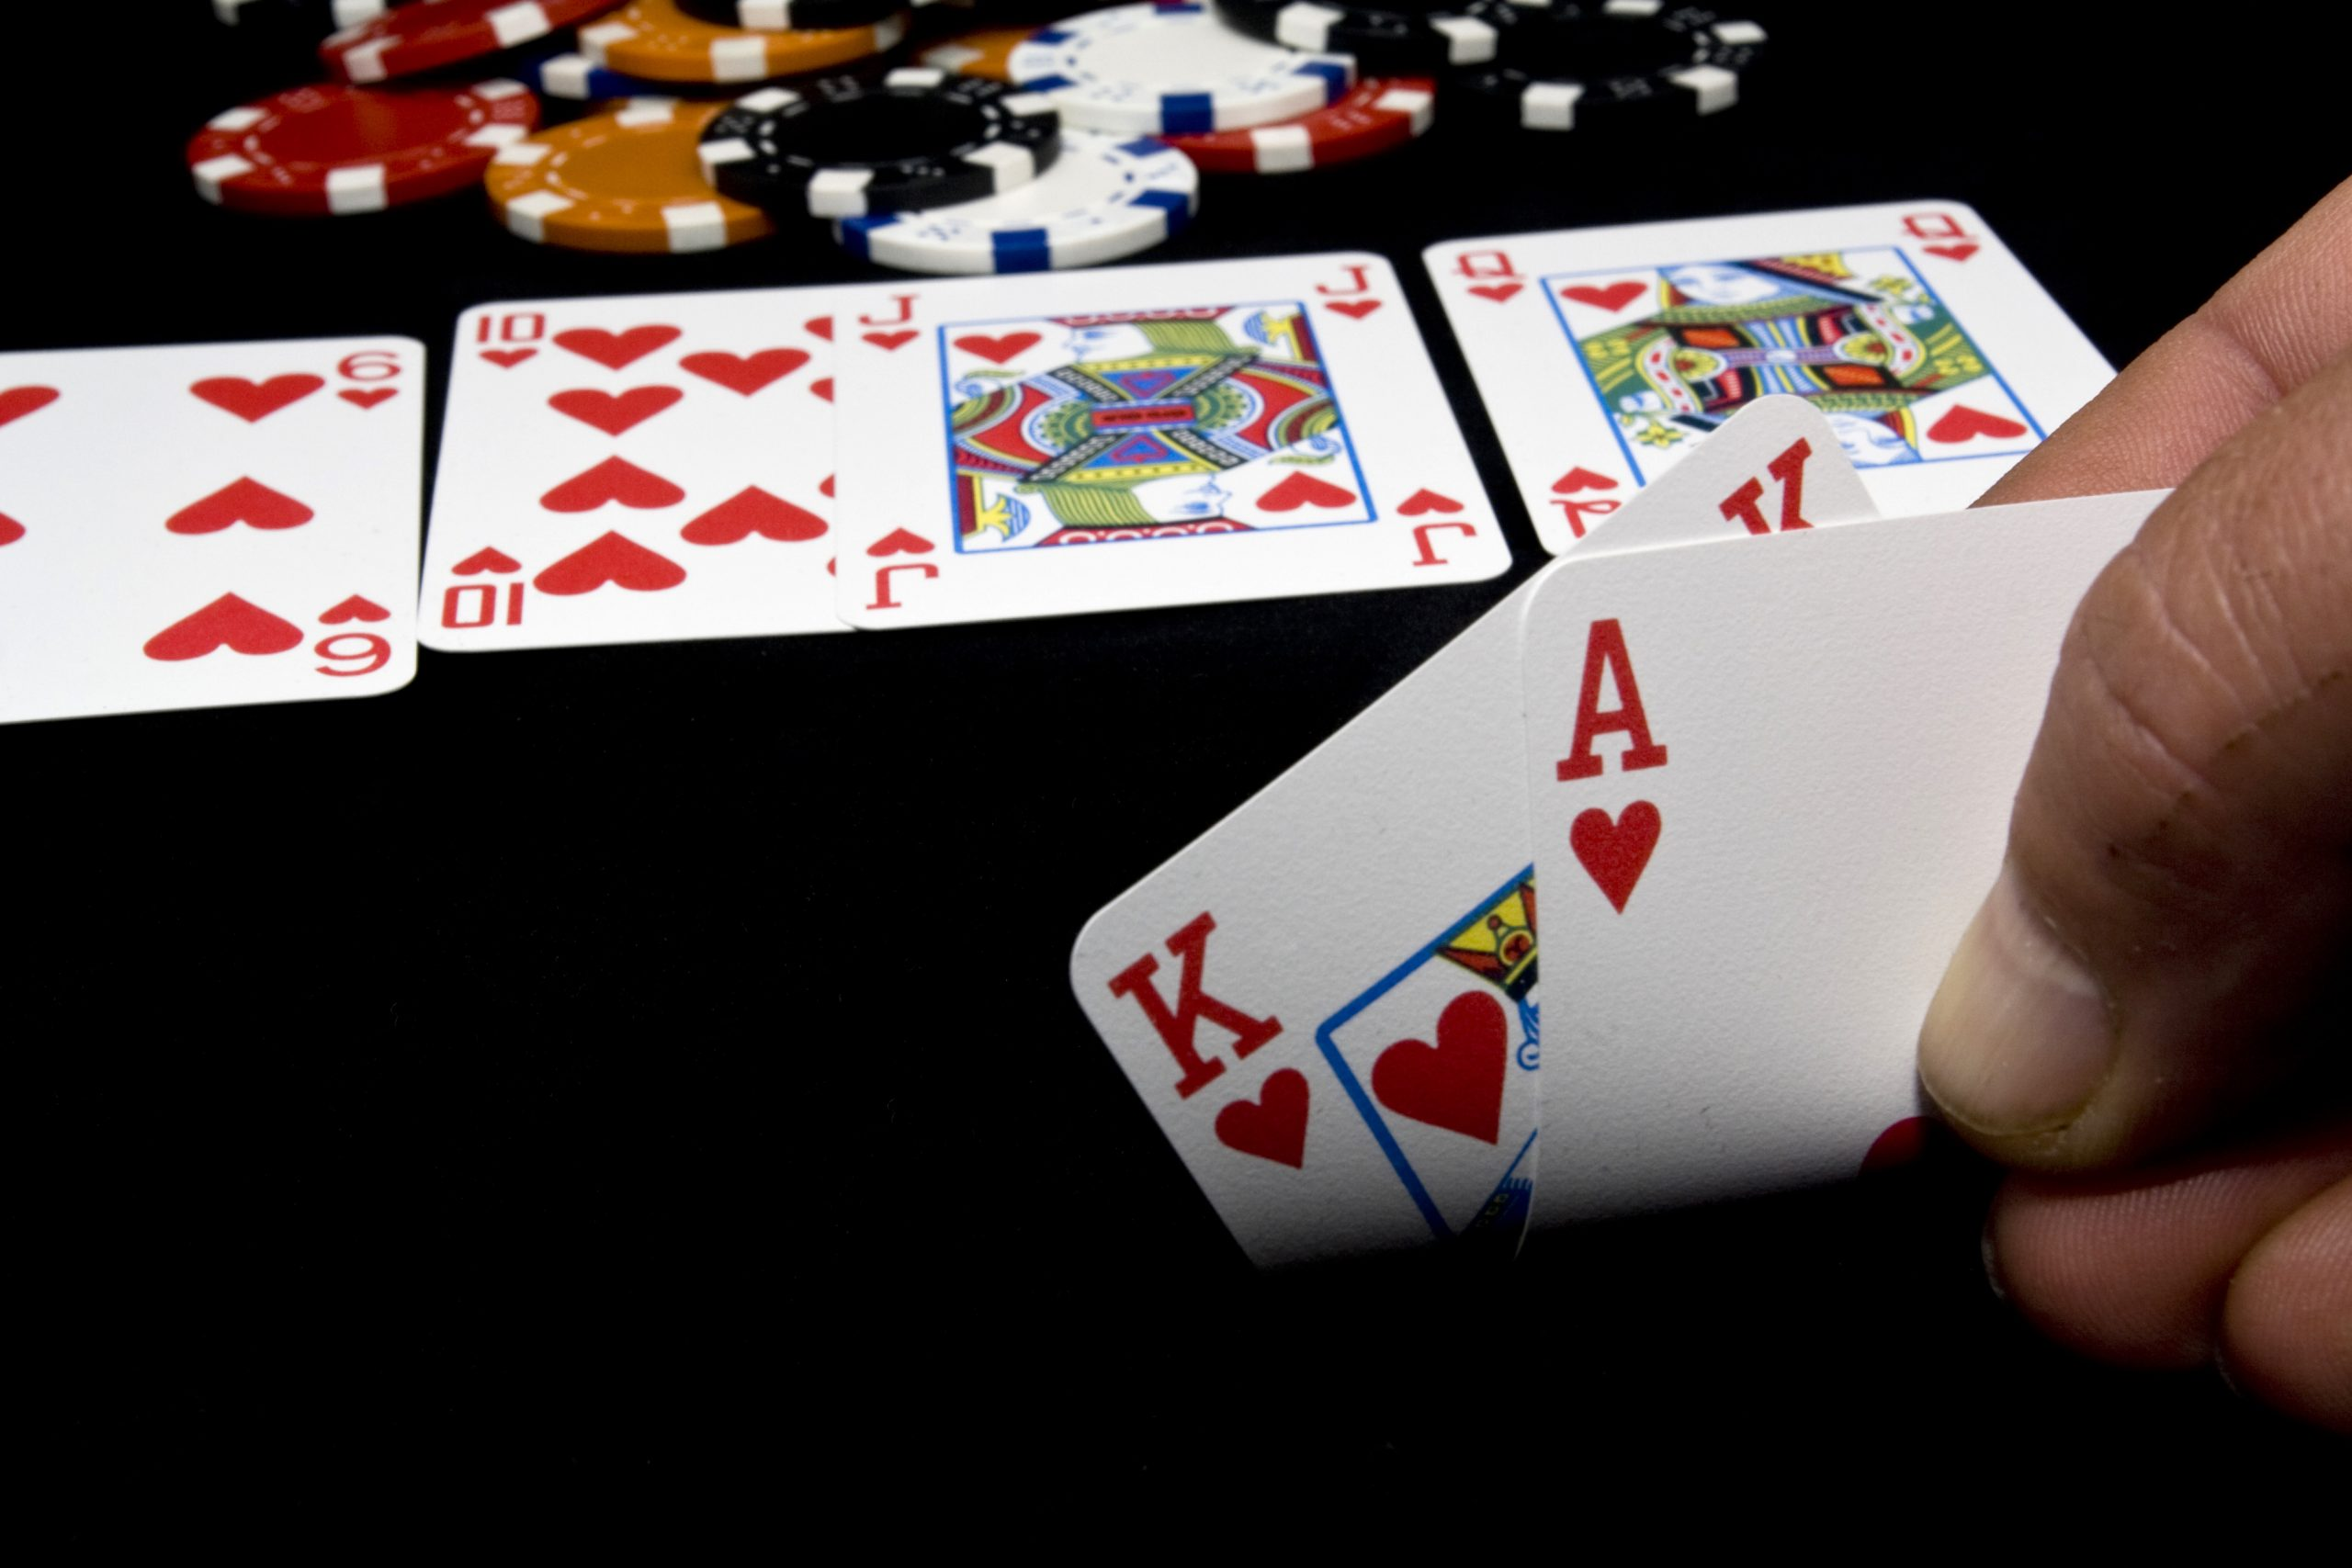 Expository Guidelines For Live Poker Follow The Instructions To Play Poker Games Know where your students are in their learning. follow the instructions to play poker games